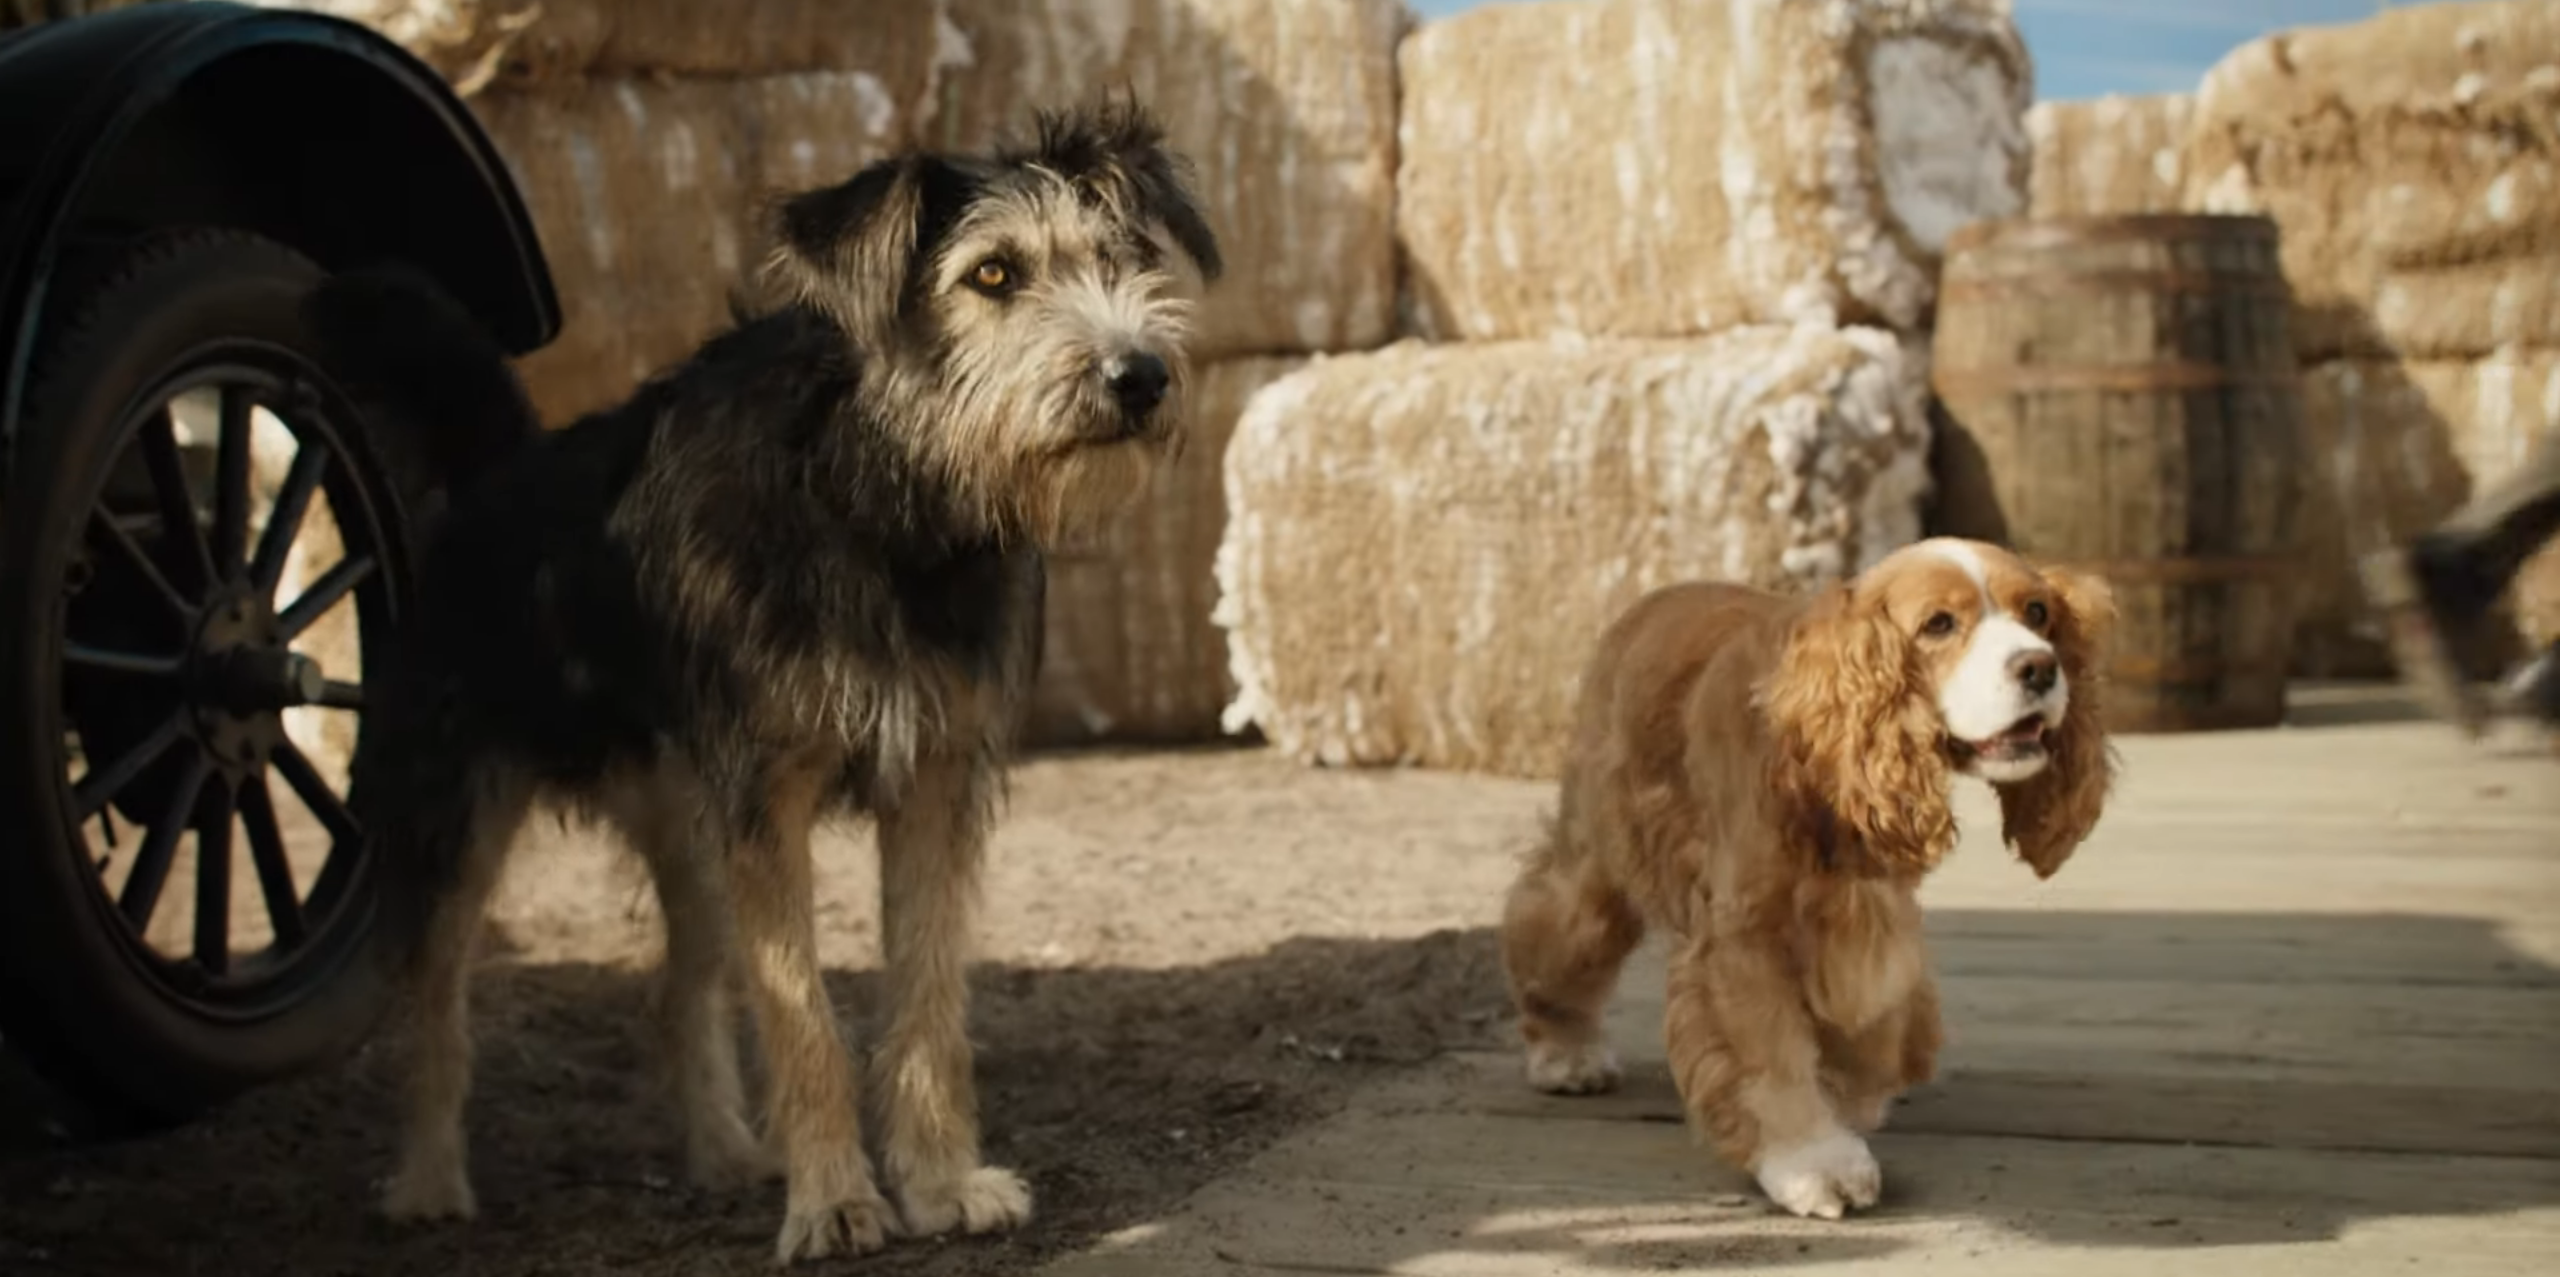 Star-Crossed Puppers Shine In The Adorable First Trailer For Disney's Live-Action Lady And The Tramp Remake